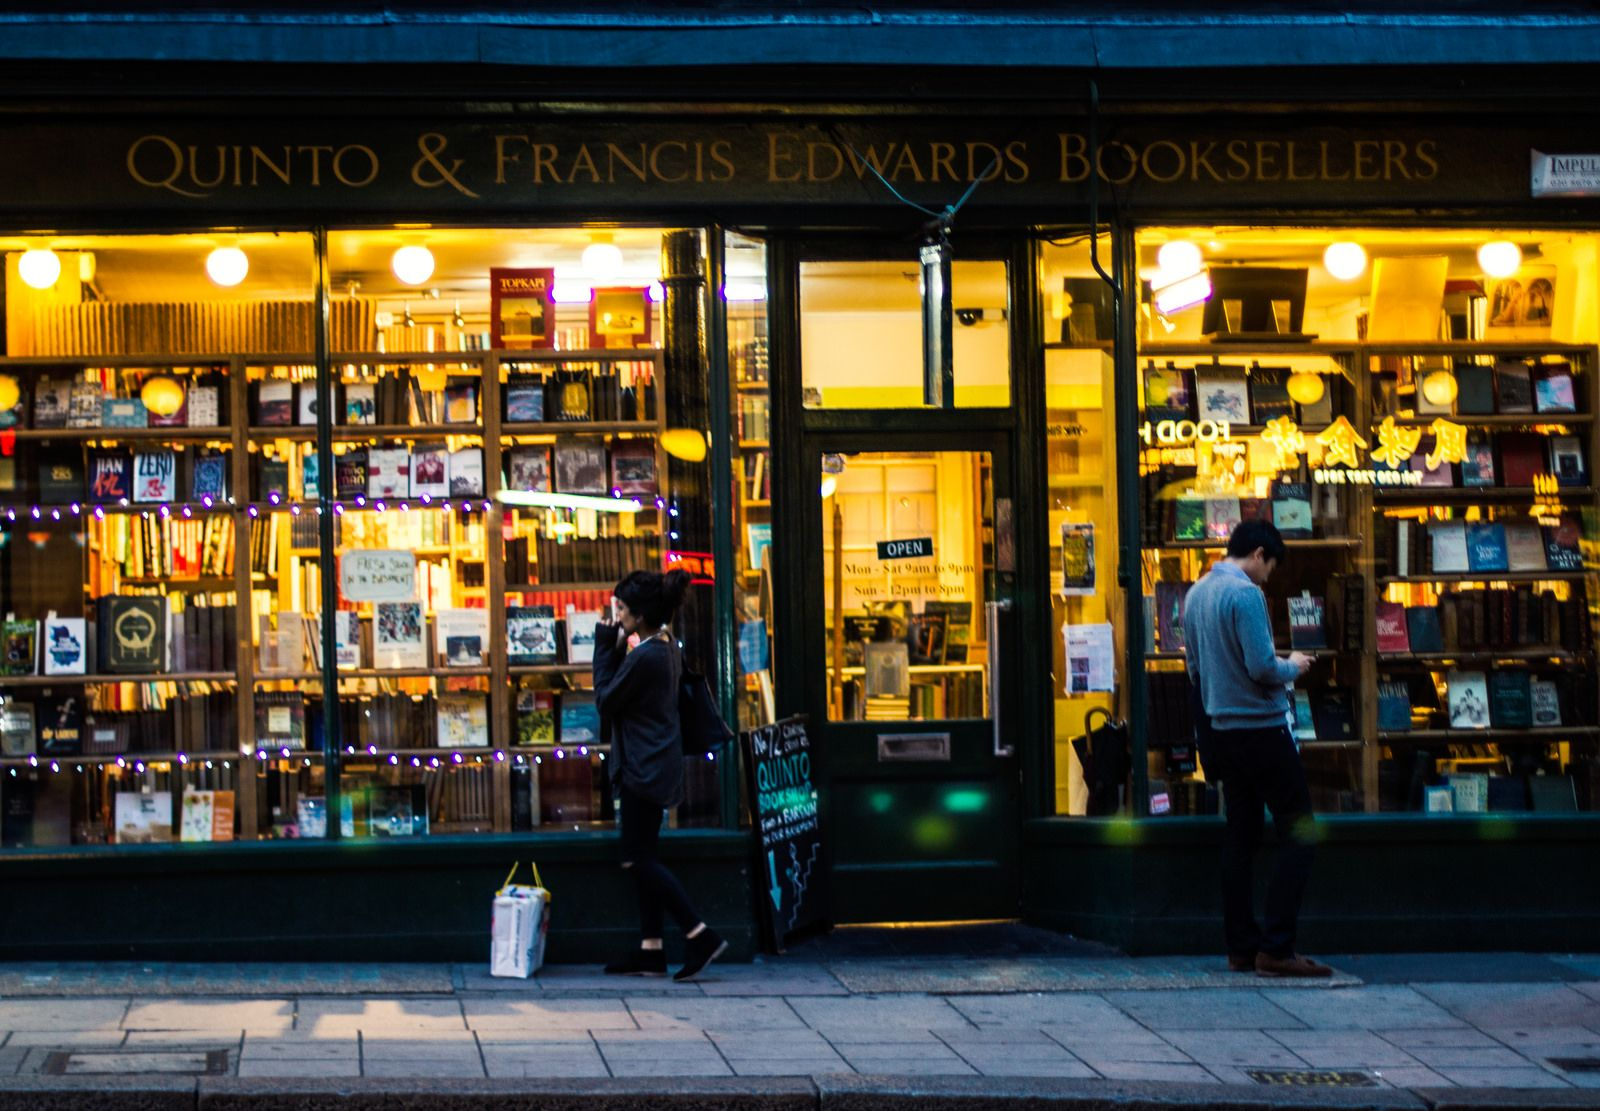 Quinto & Francis Edwards Bookstore | Flickr - Photo Sharing!